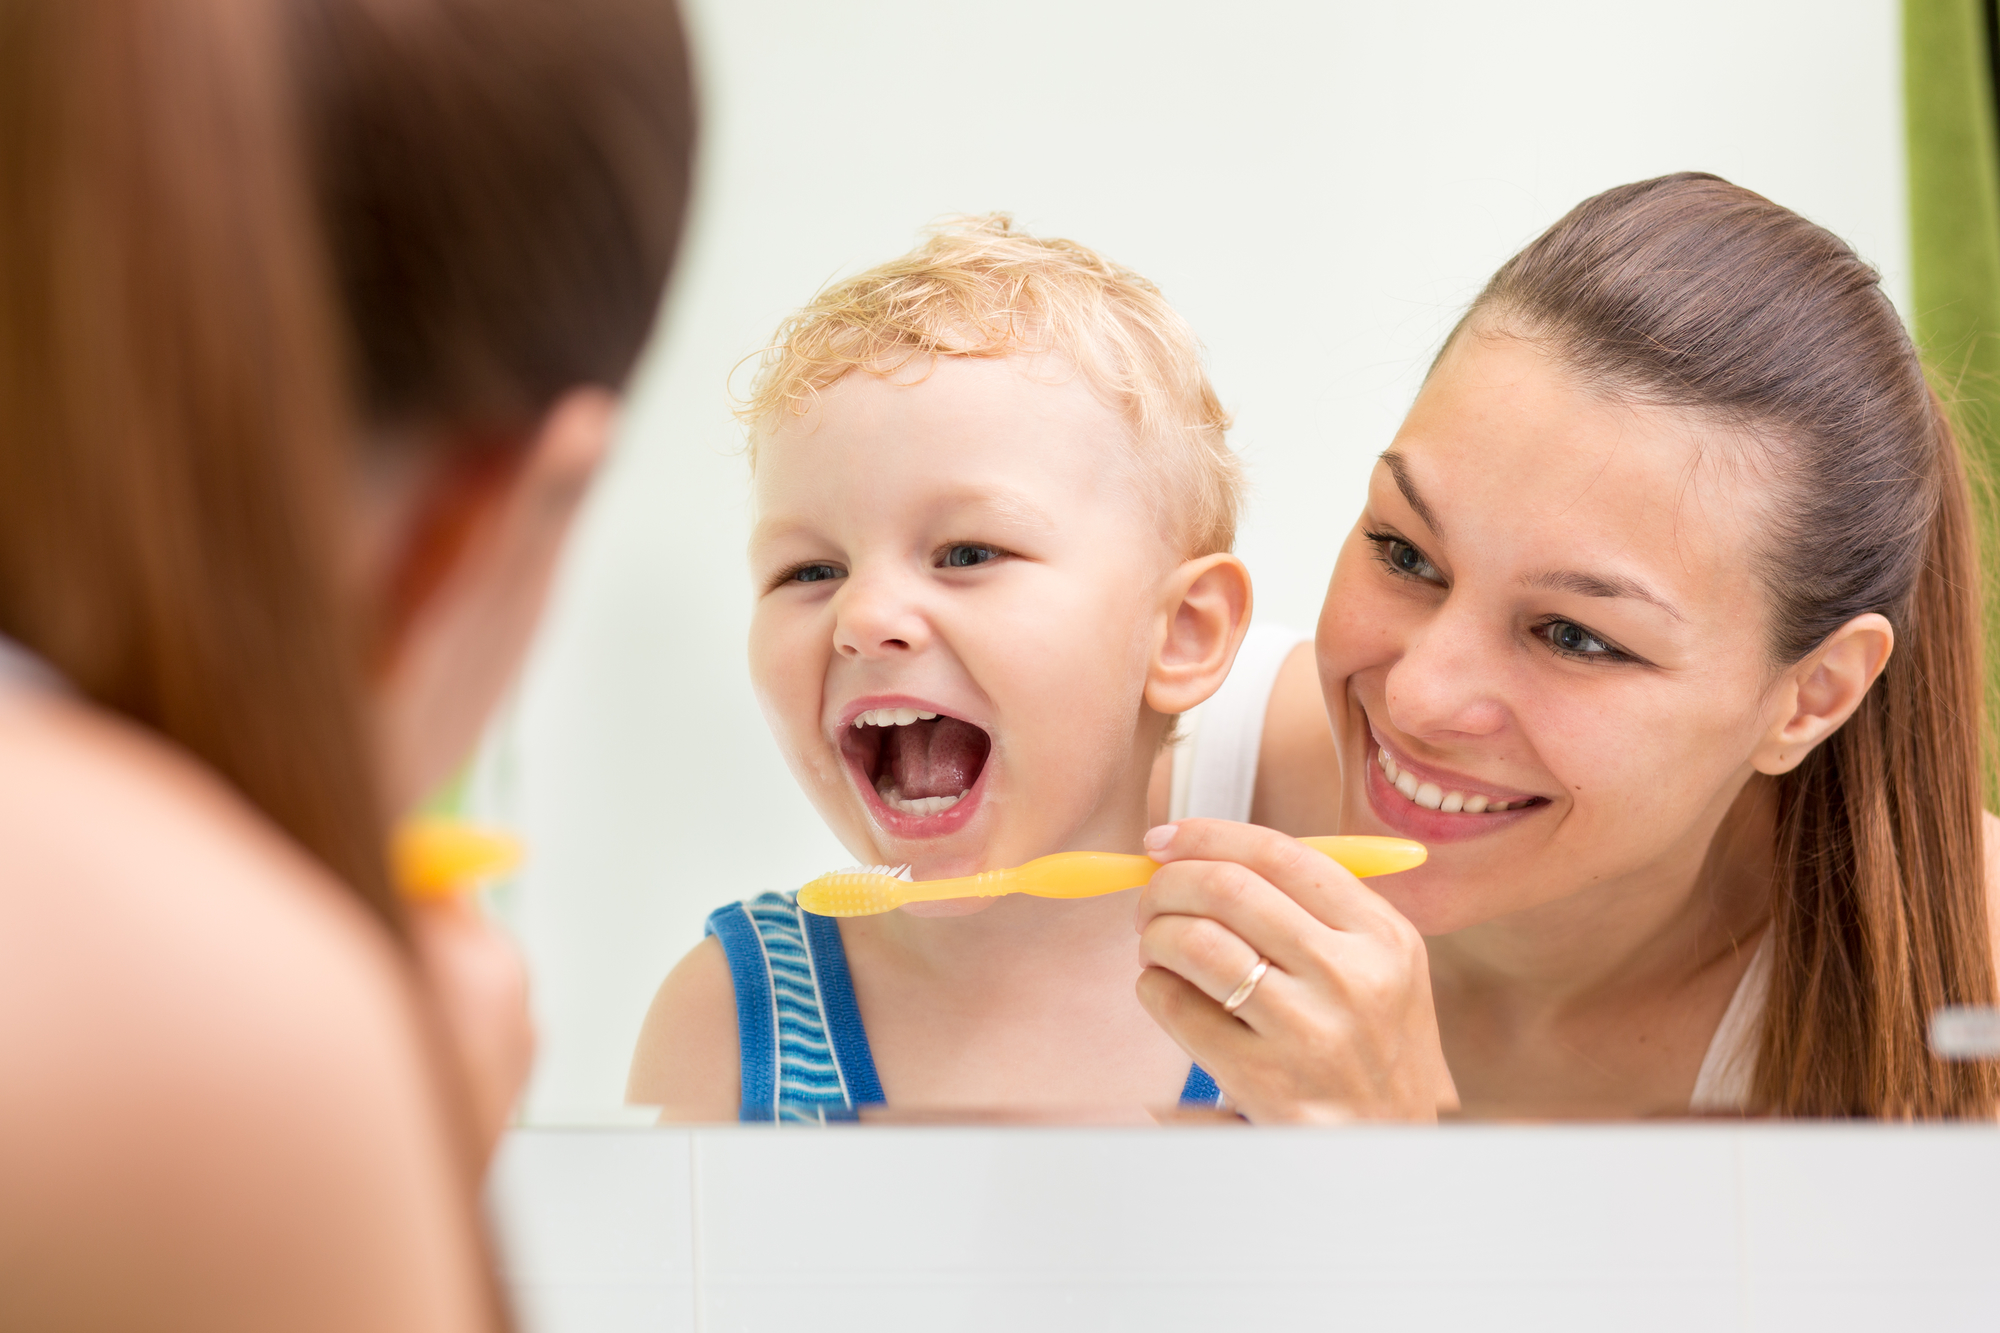 Why does my child need a pediatric dentist in Boynton Beach?